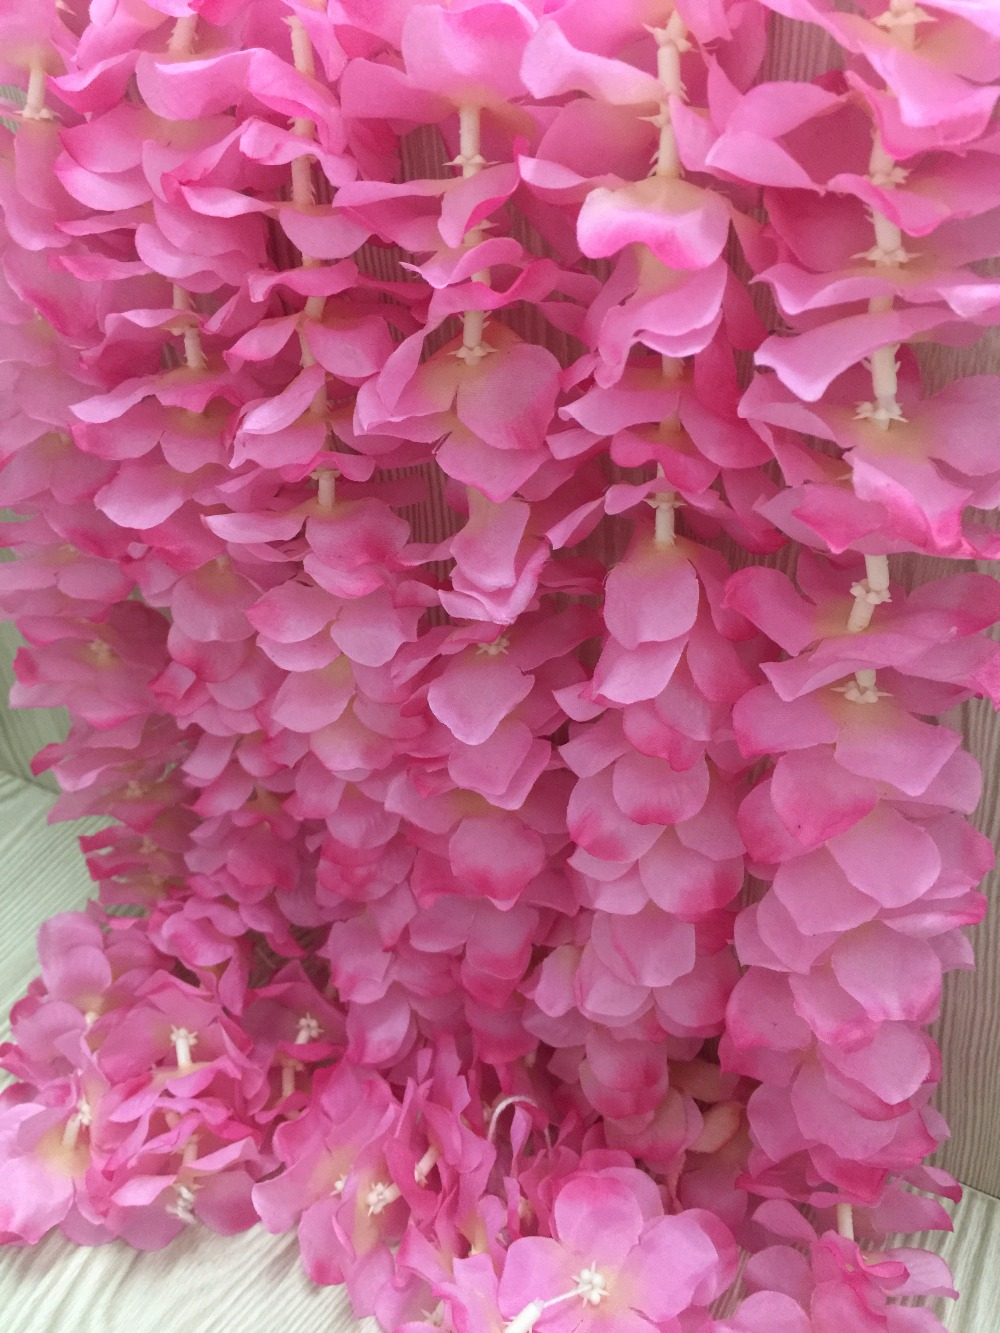 Apricot encrypted natural vertical silk flower string for wedding apricot encrypted natural vertical silk flower string for wedding decoration 1m long flower petal bridal bouquets decoration in artificial dried flowers izmirmasajfo